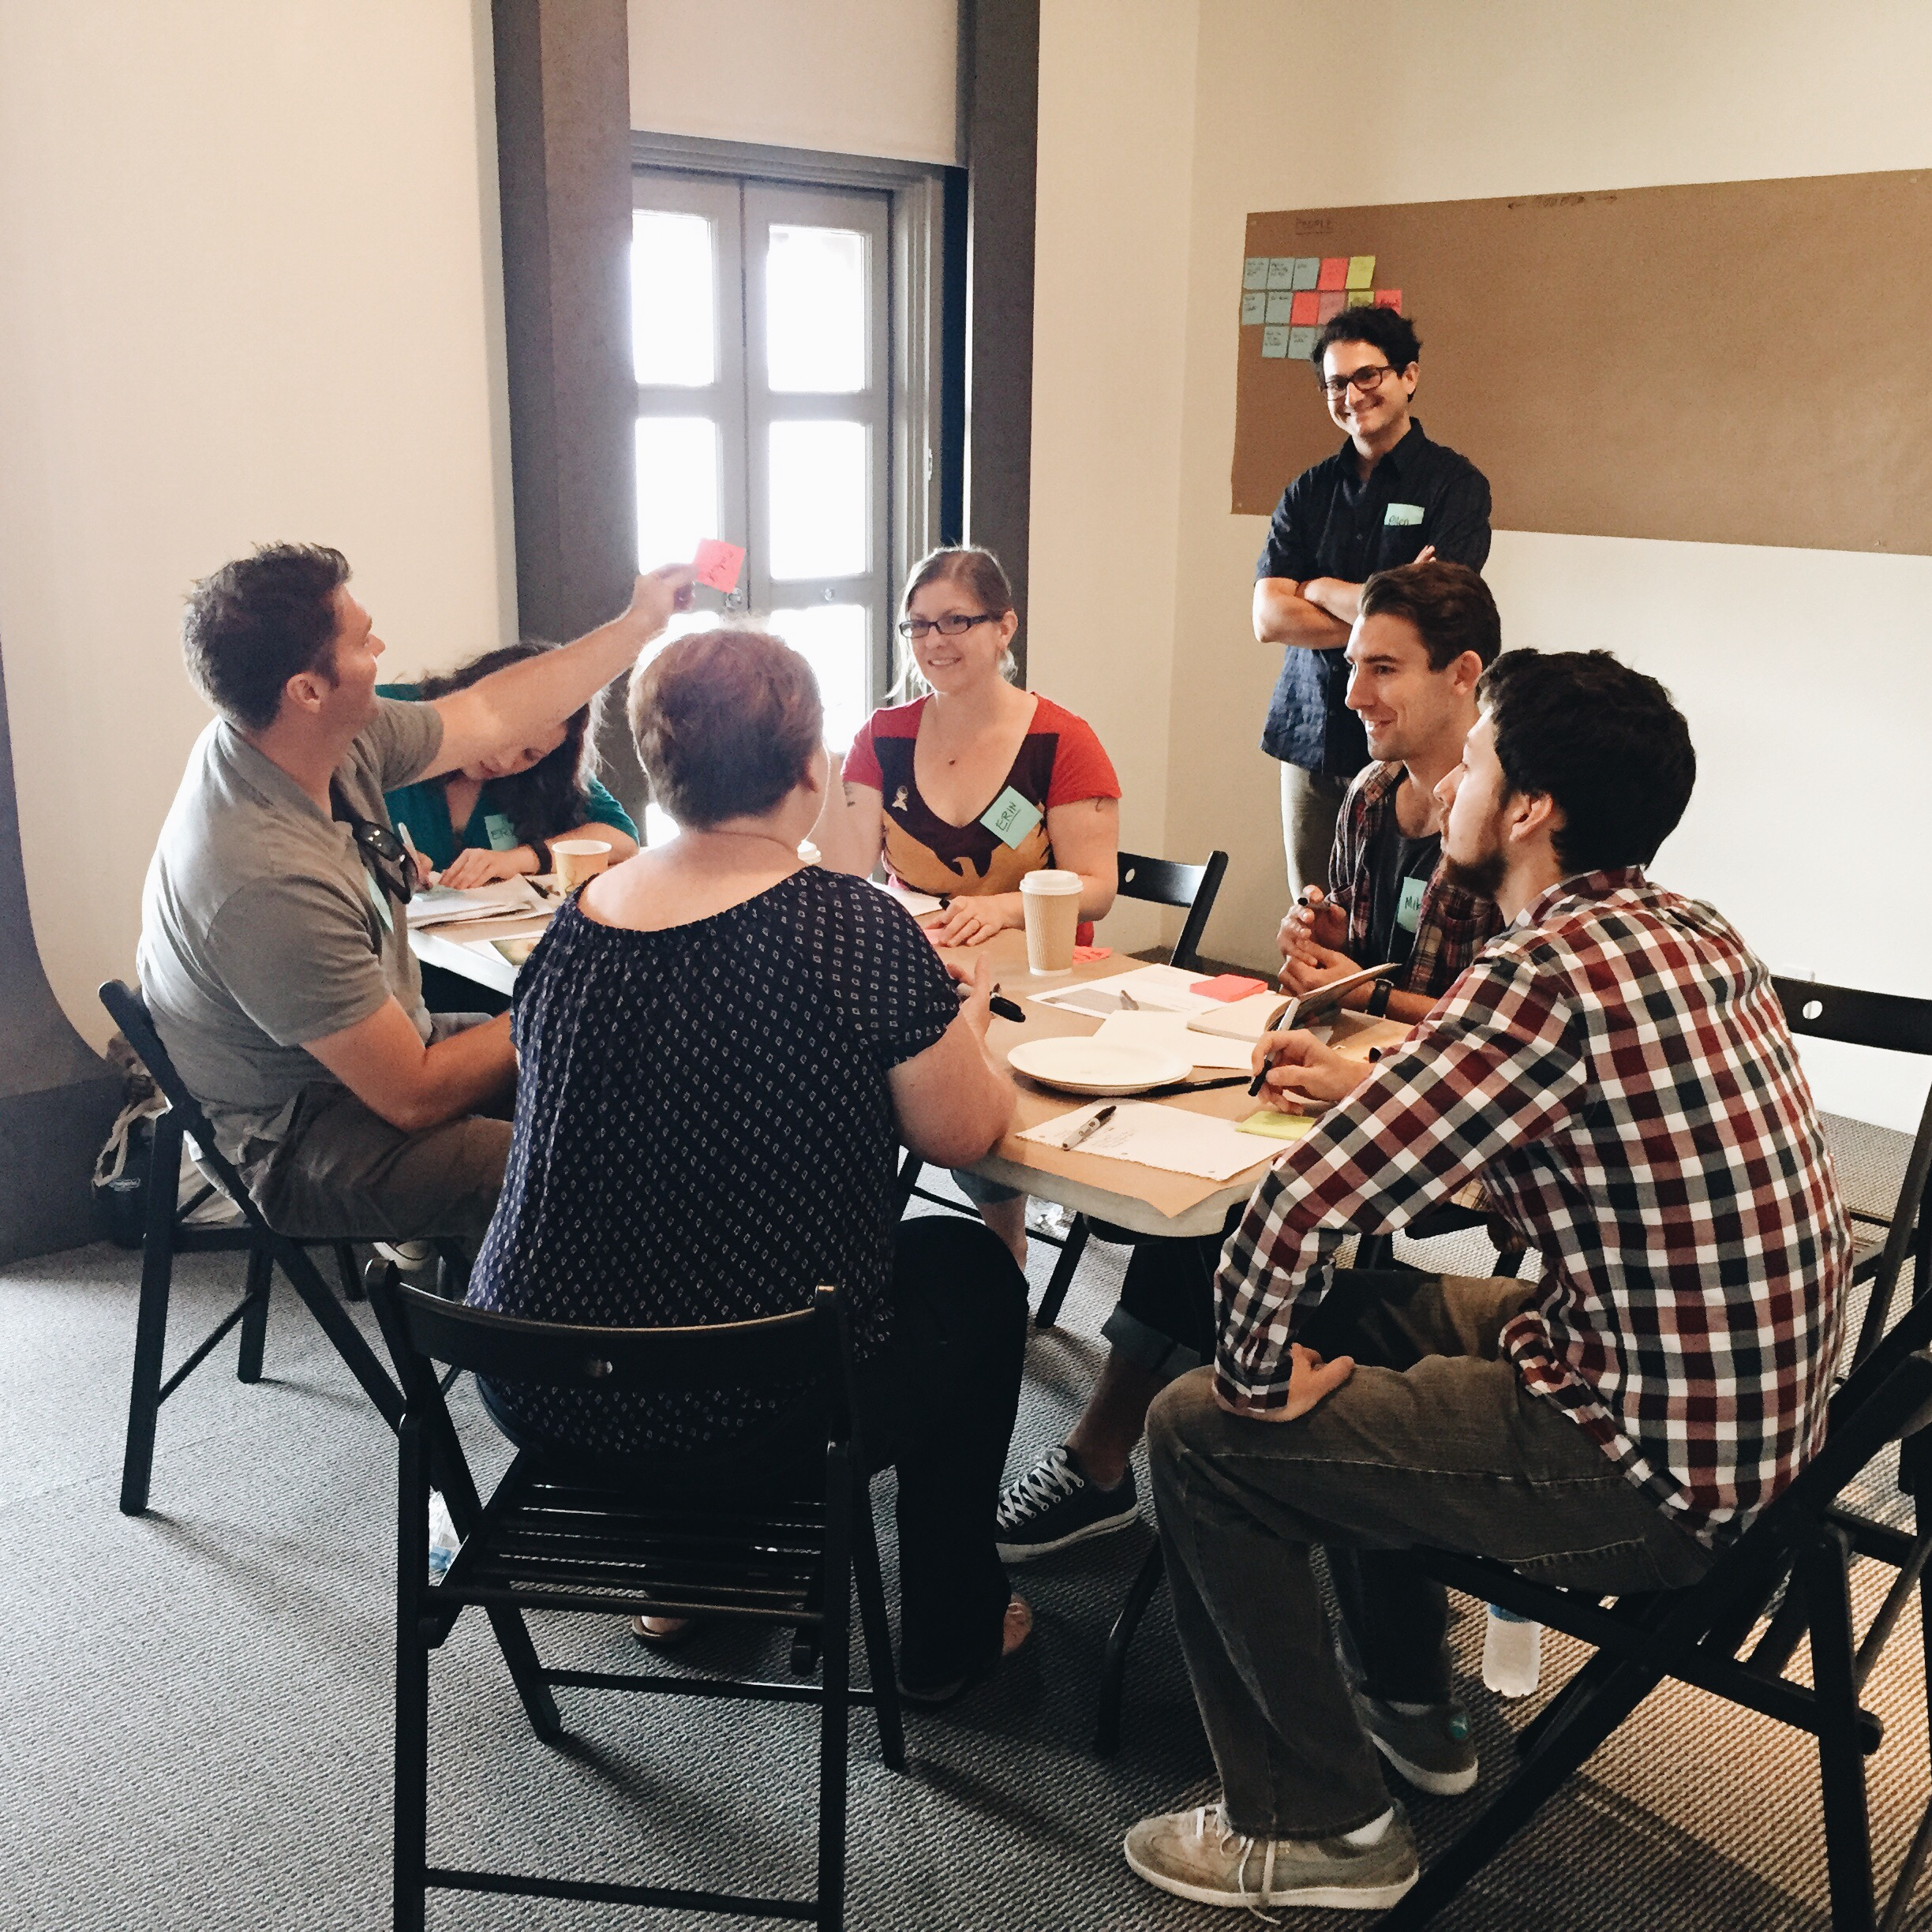 Pixel Story Studio and Hopscotch Labs joined forces to offer a training day of ethnographic research.